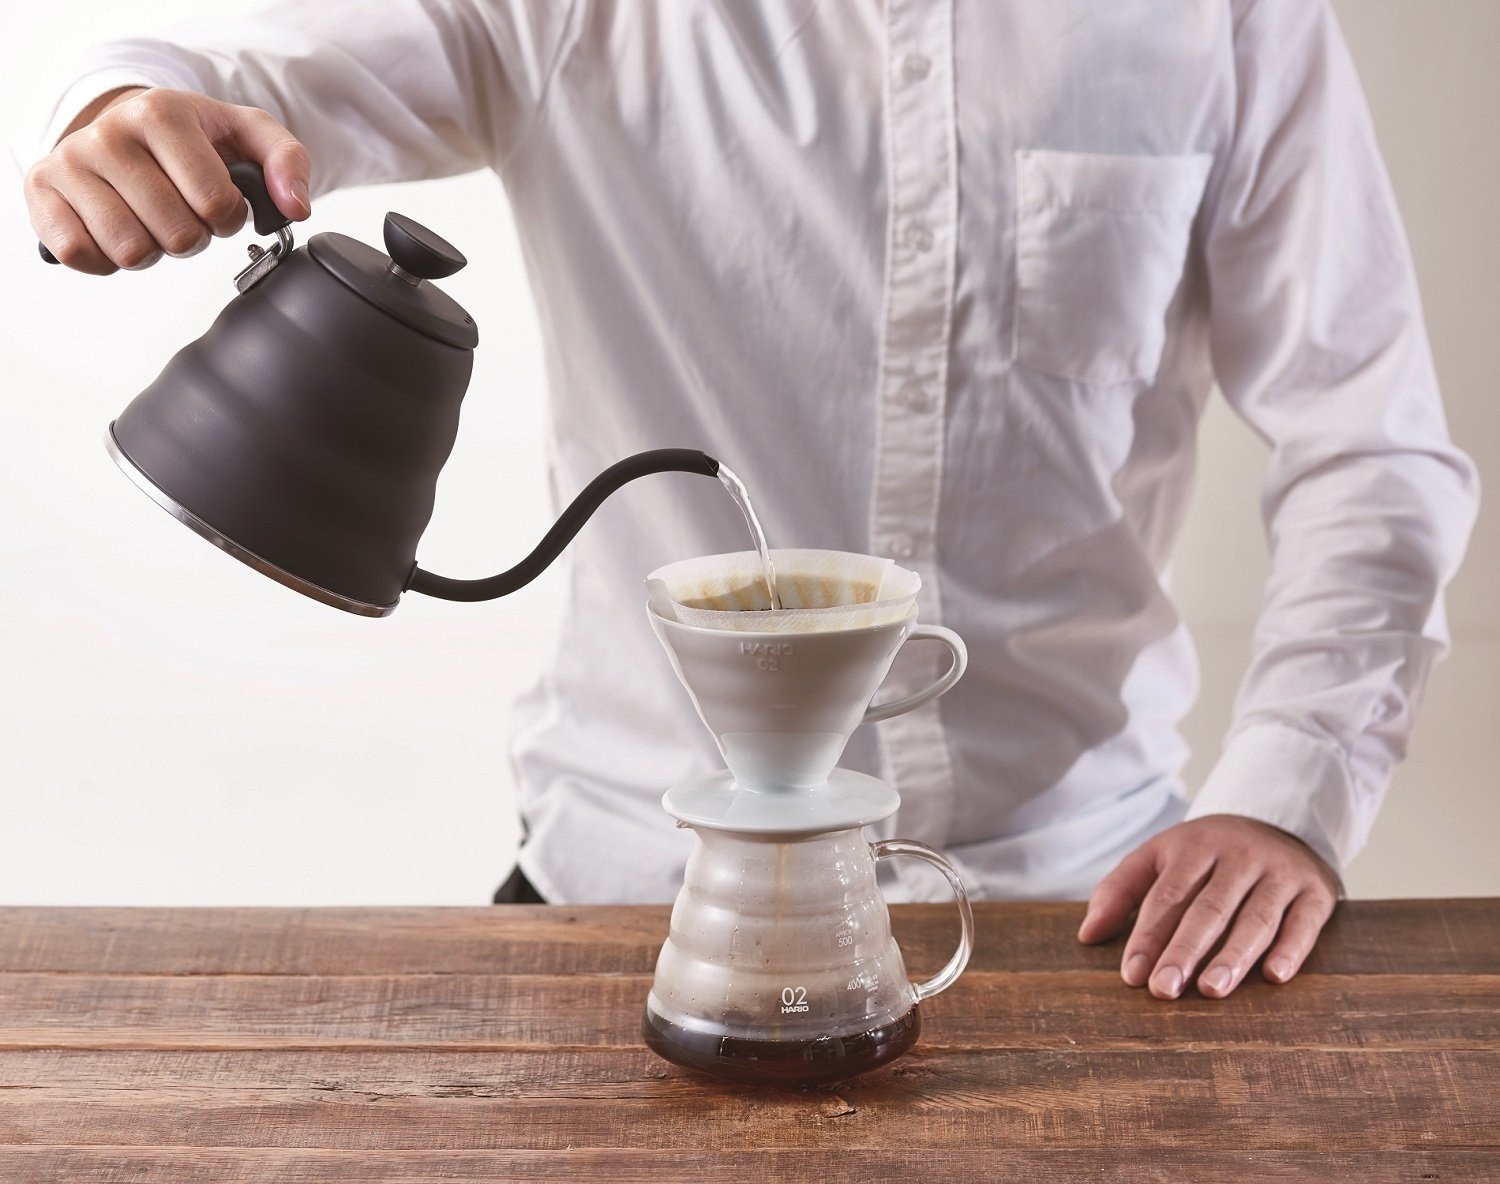 Matte black gooseneck kettle being used for pour over